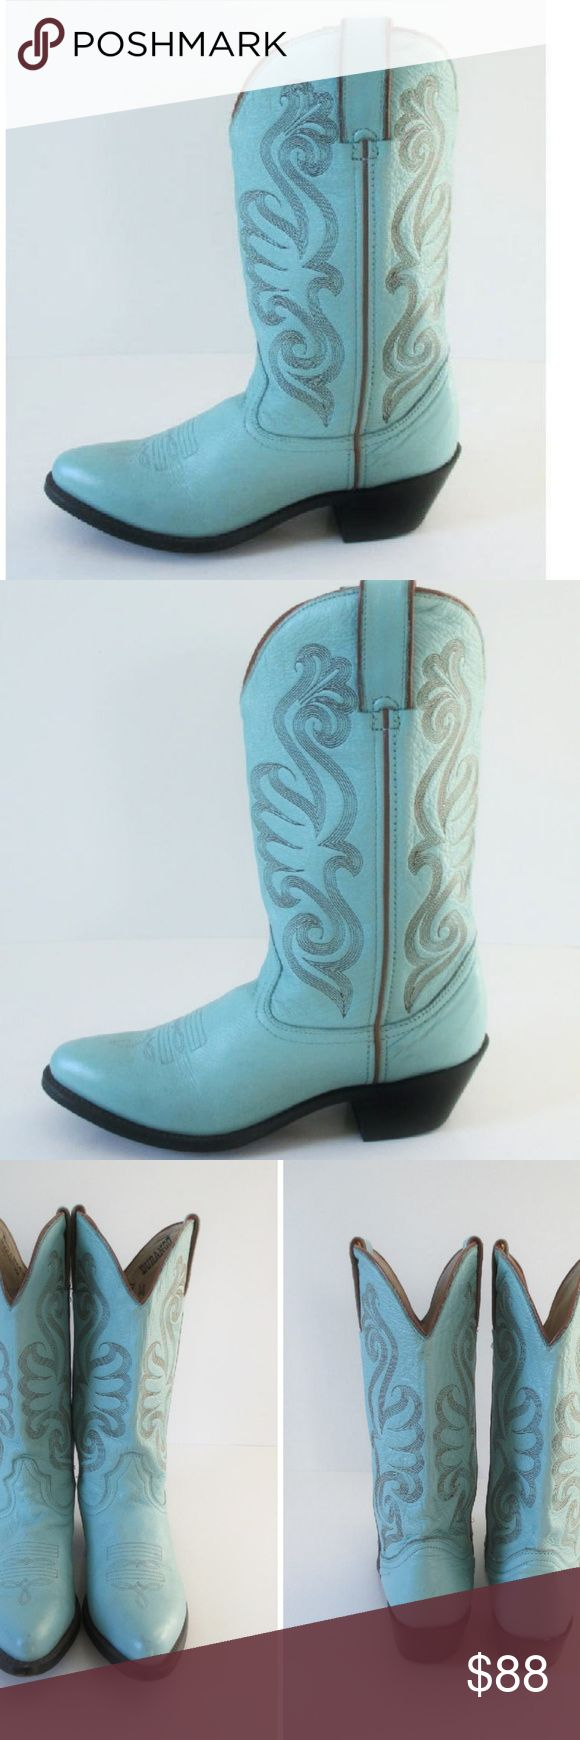 Durango Turquoise Leather Western Cowboy Boots 7 A lovely turquoise blue + Rust piping Classic stitched design on shaft All leather & leather lined Taped side seams + cushioned insole with flex forepart.  Handstained outsole and cowgirl stacked heel   Leather + Size 7 + Shaft height 11 inches  Tip of toe to wall : 10 3/4 inches Minimal wear+ Some of the original plastic is on the inside of the back heel(where your spur sits) Some minor scuffing and a white-ish mark I can't get off of the…